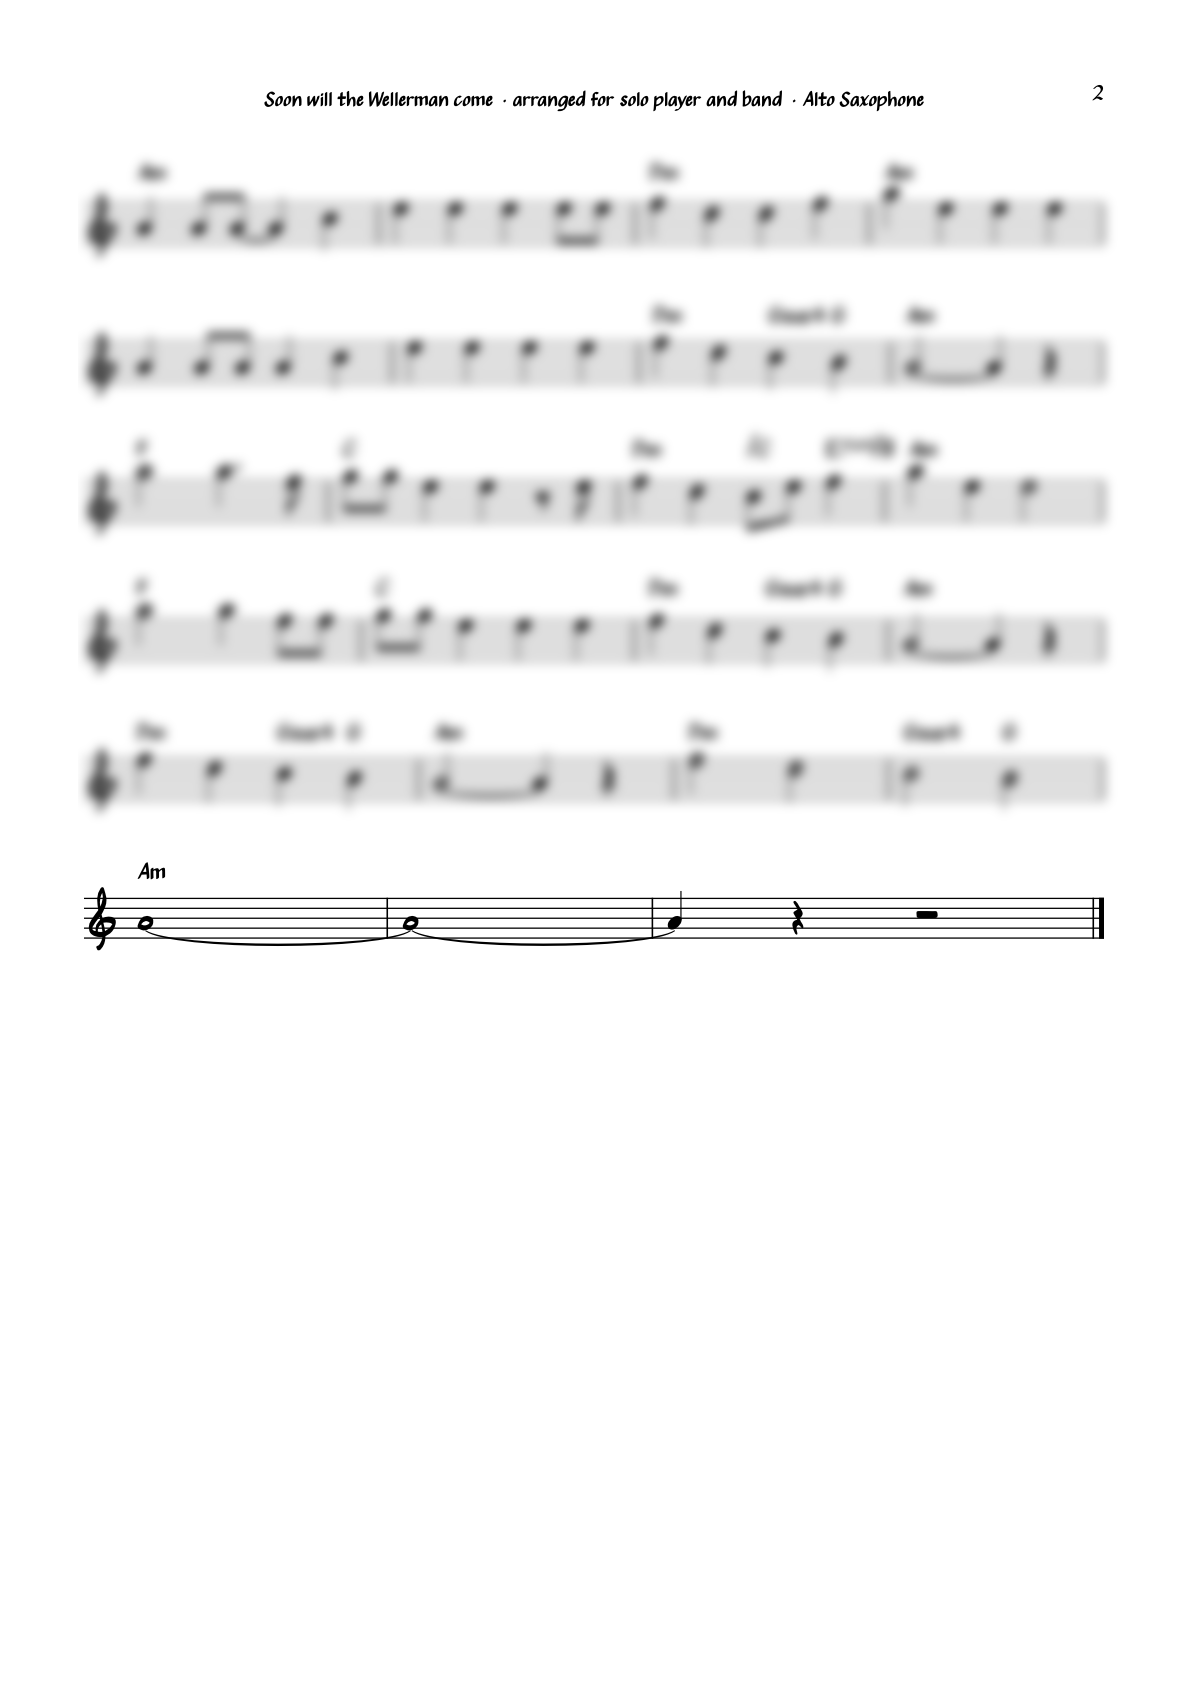 """""""Soon will the Wellerman come"""" for Alto Saxophone"""